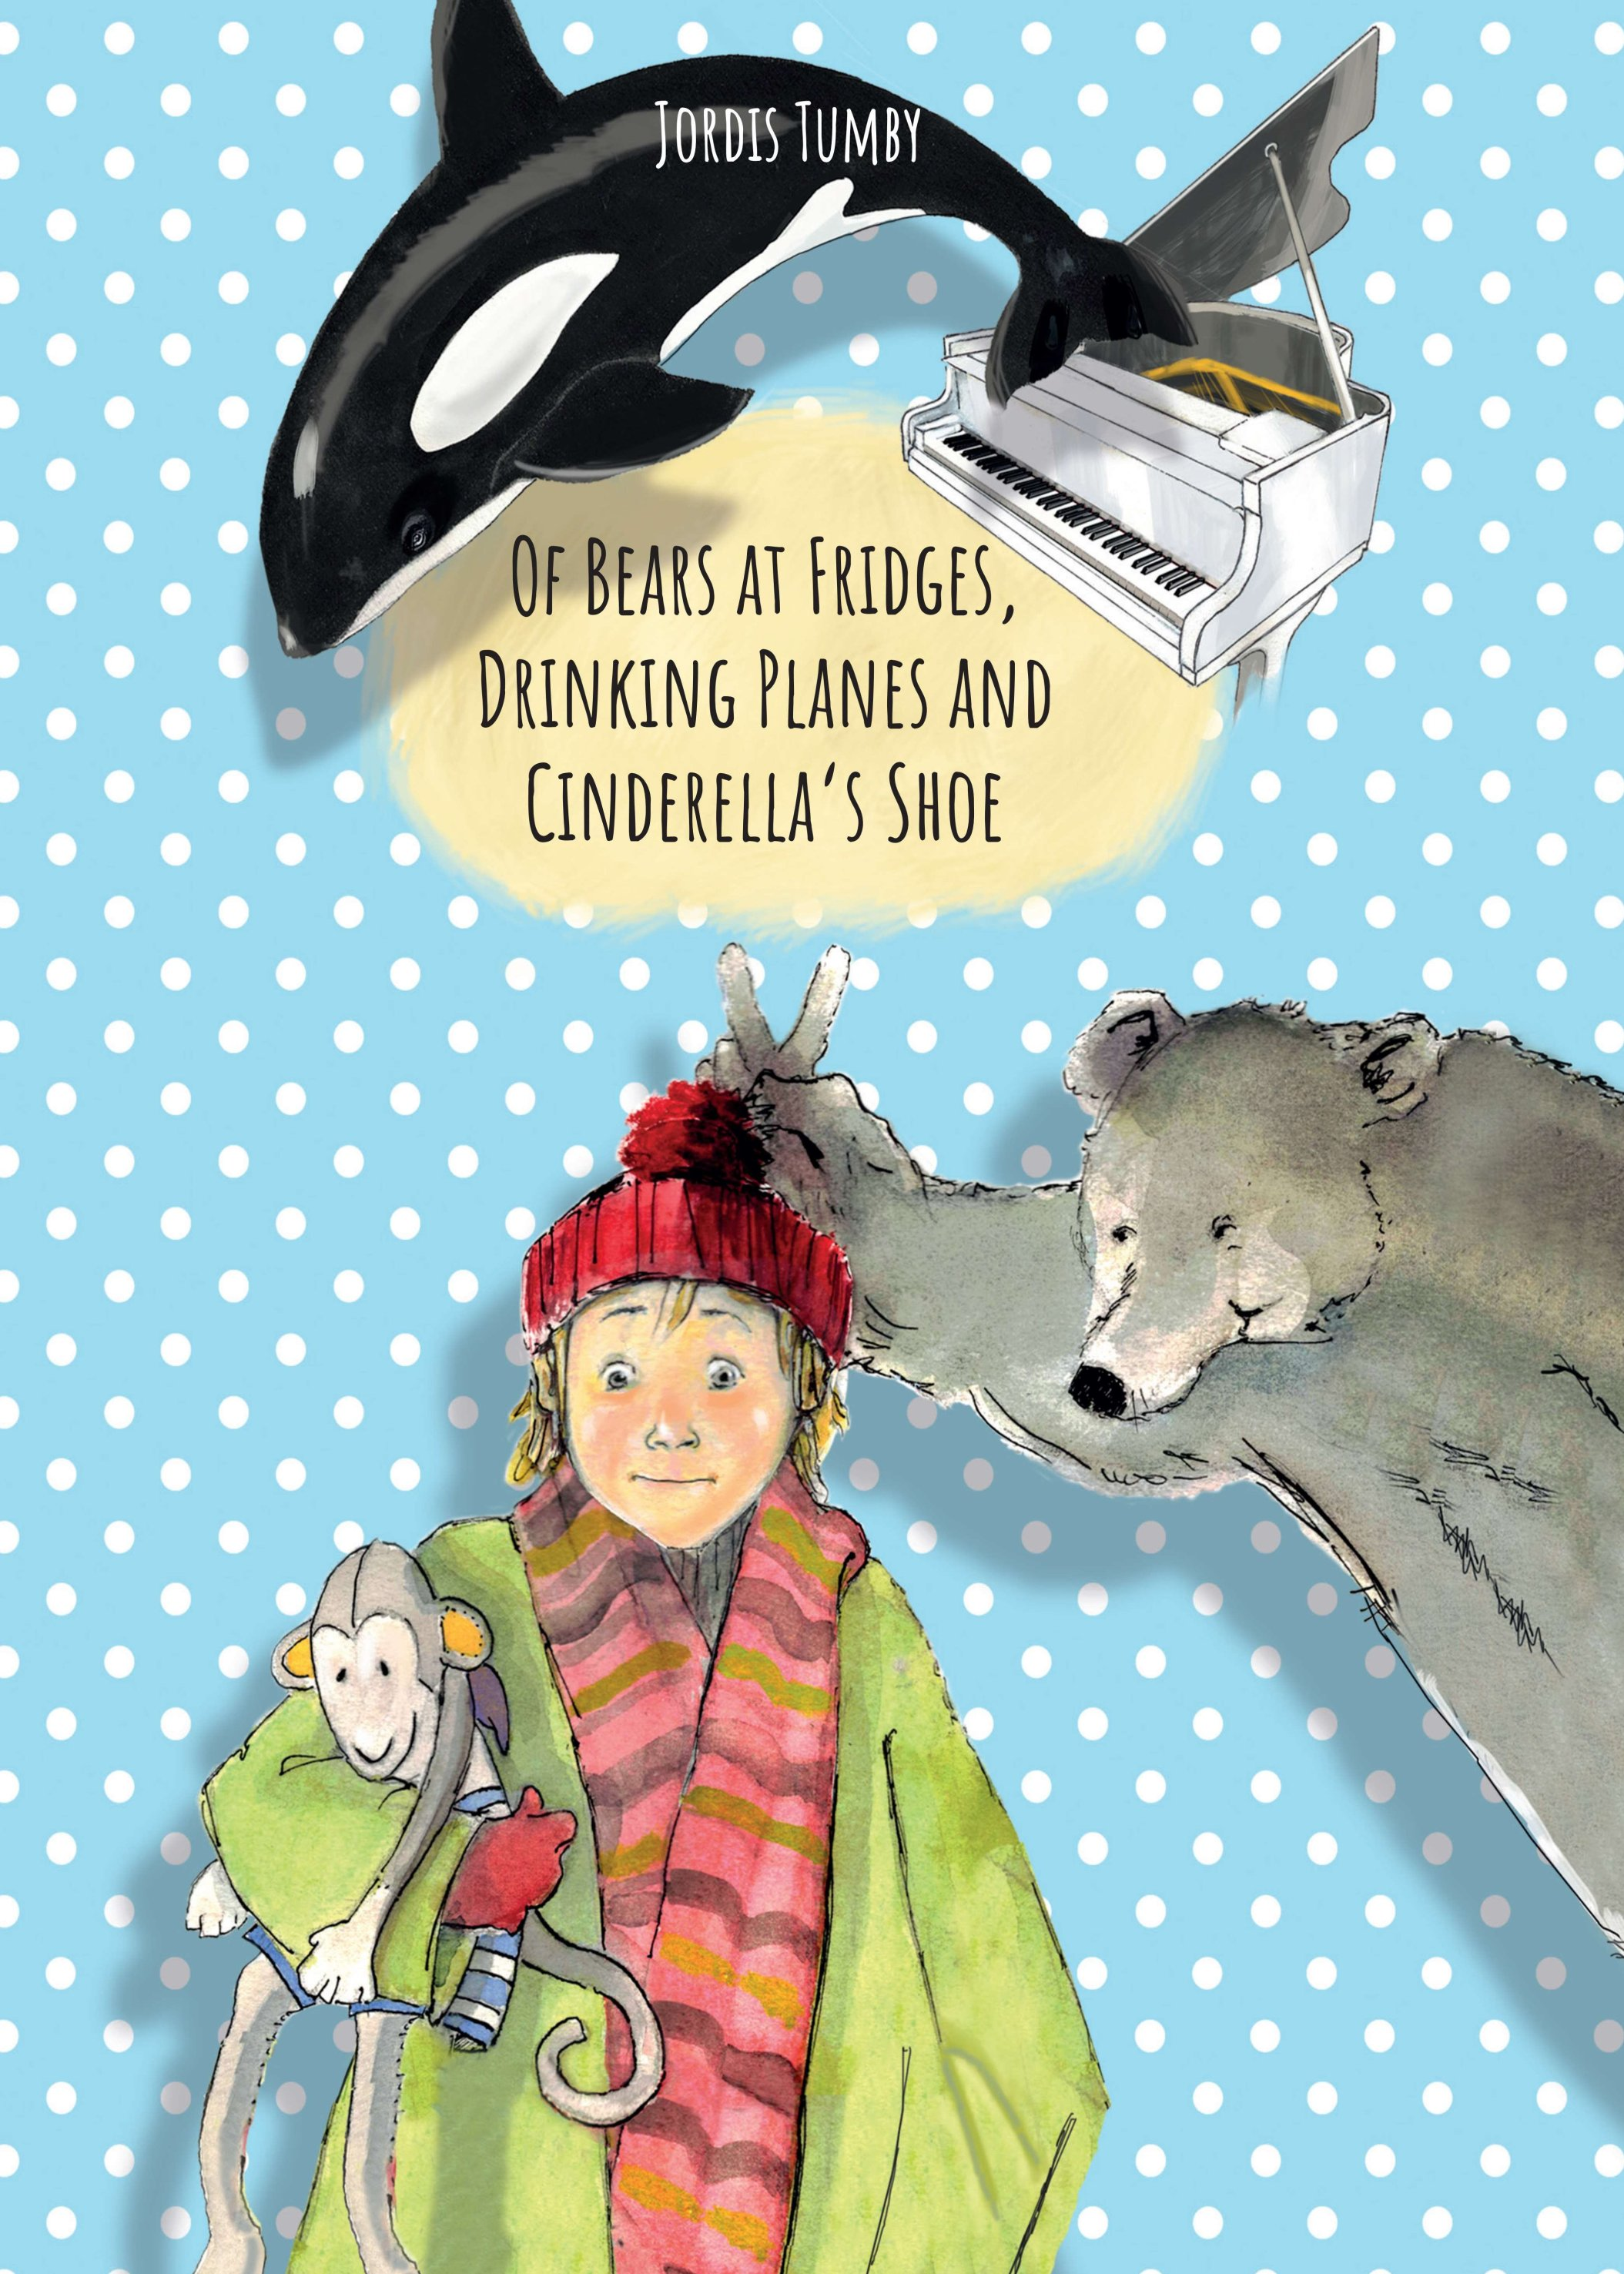 Of Bears at Fridges, Drinking Planes and Cinderella's Shoe - Inspiring children's story